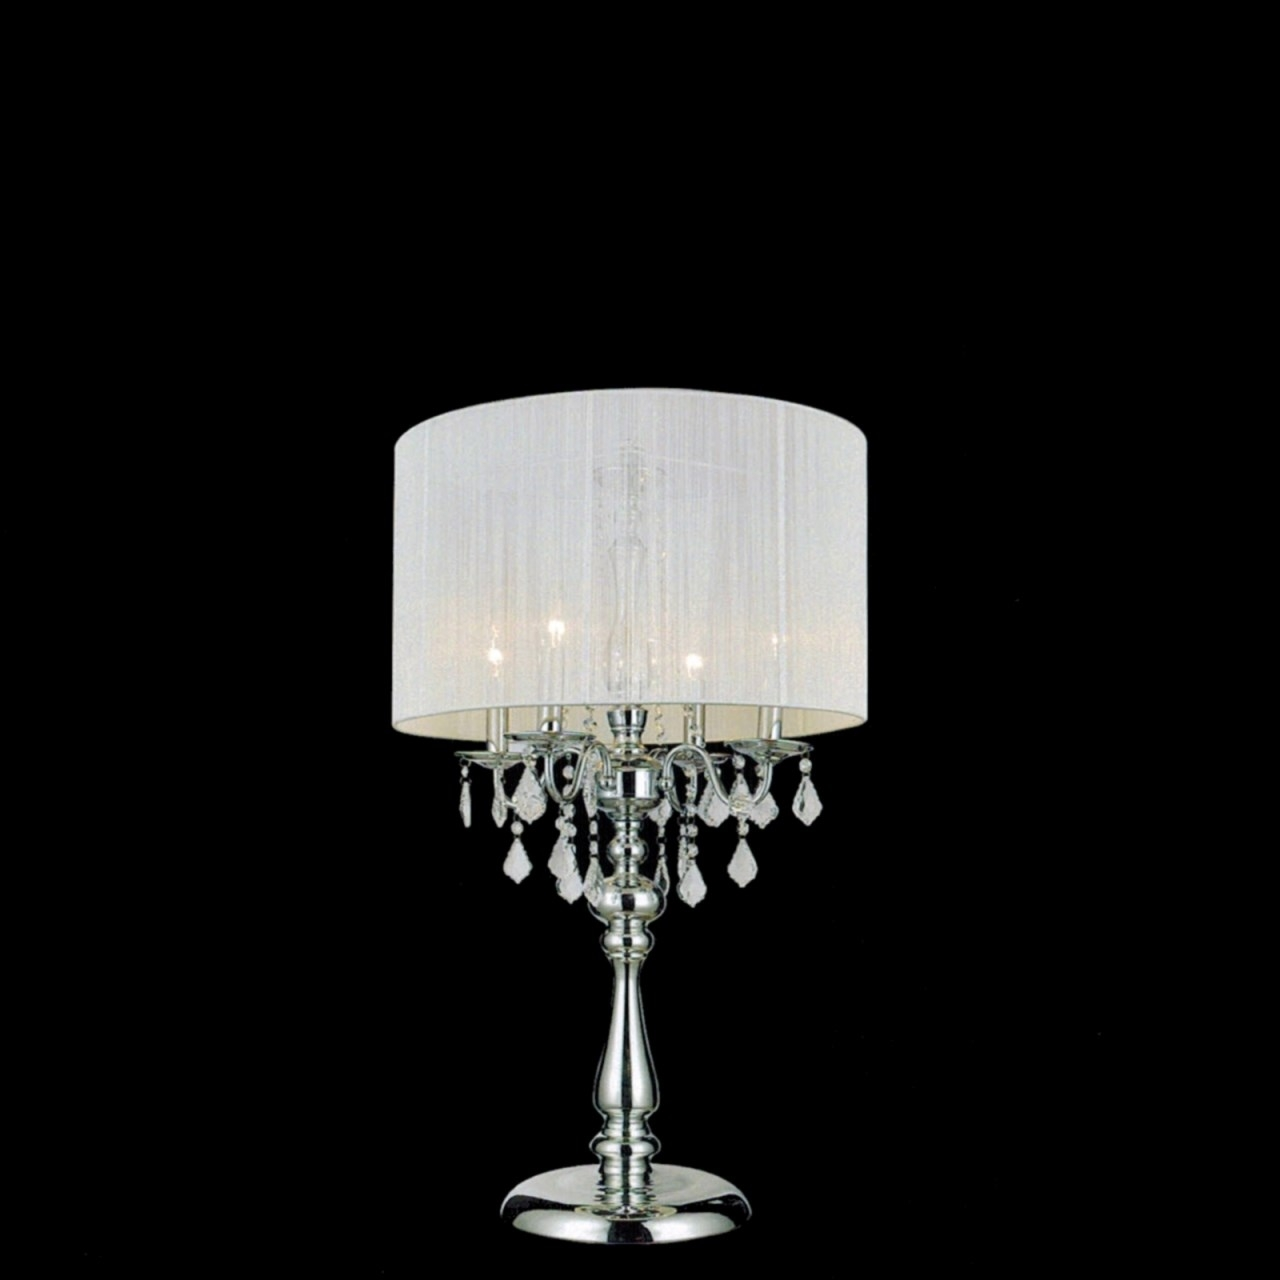 Best Chandelier Lamp Shades Pertaining To Chandelier Lamp Shades (Image 1 of 25)